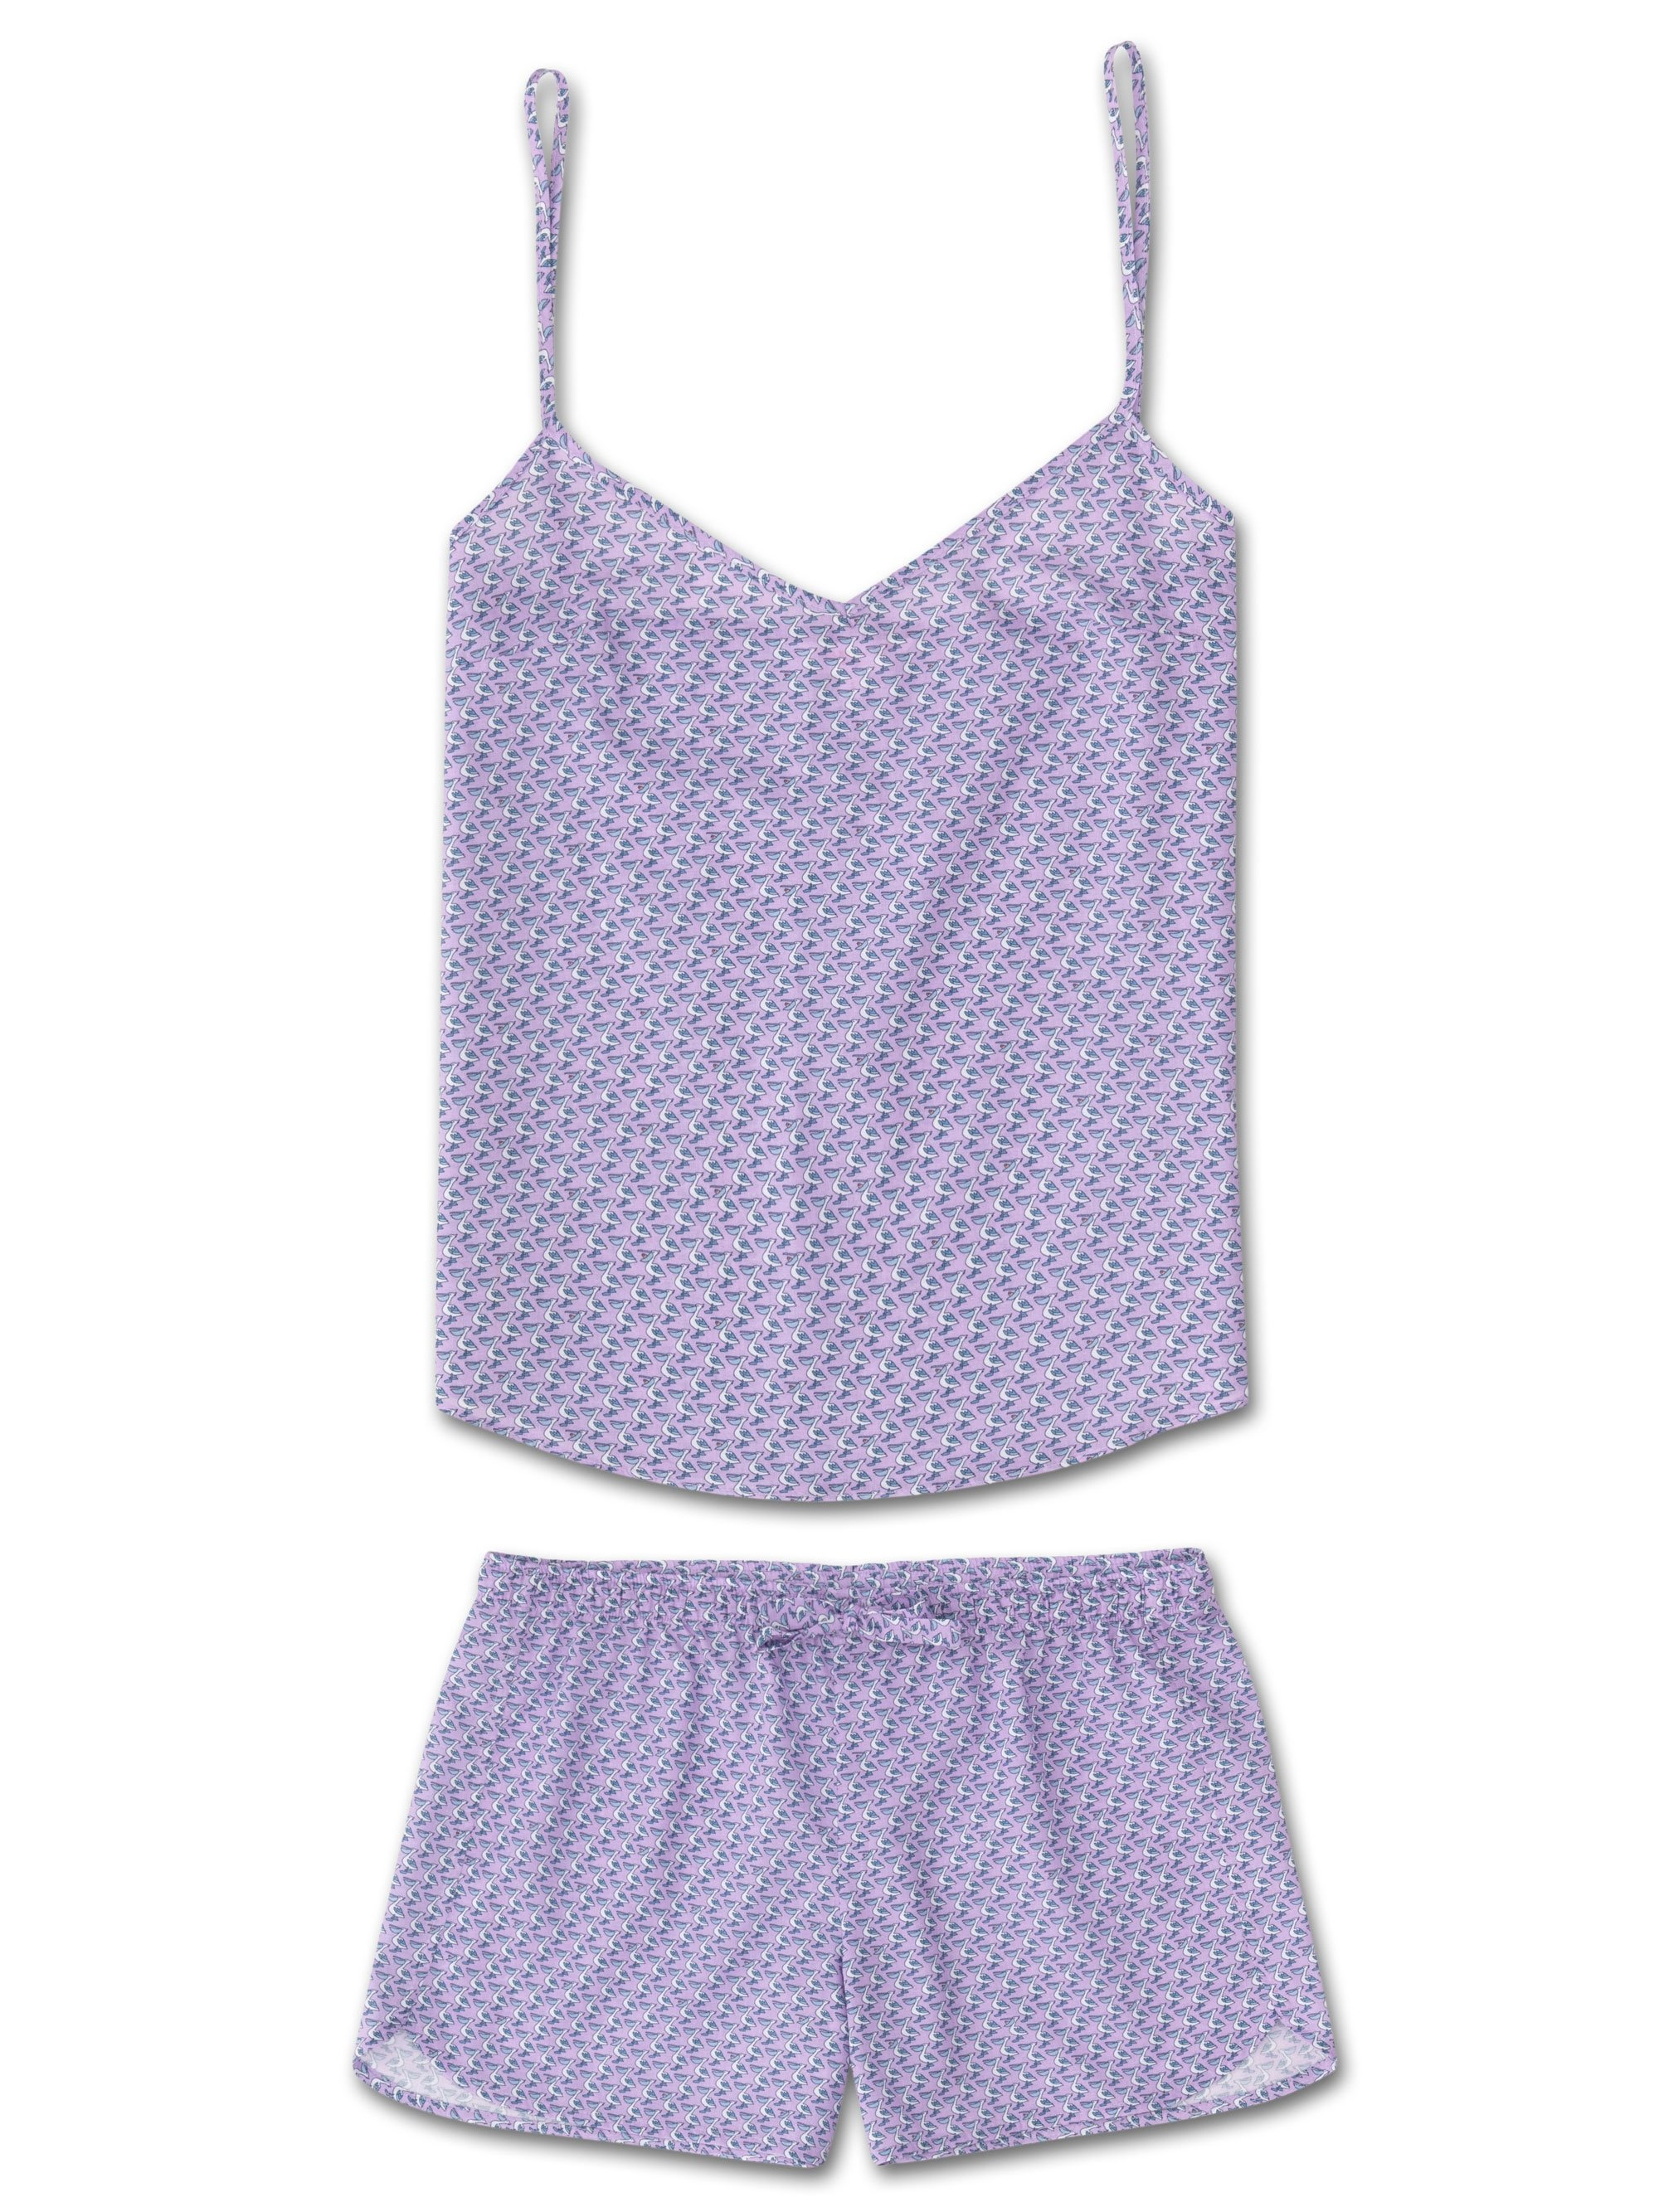 Women's Cami Short Pyjama Set Ledbury 16 Cotton Batiste Lilac